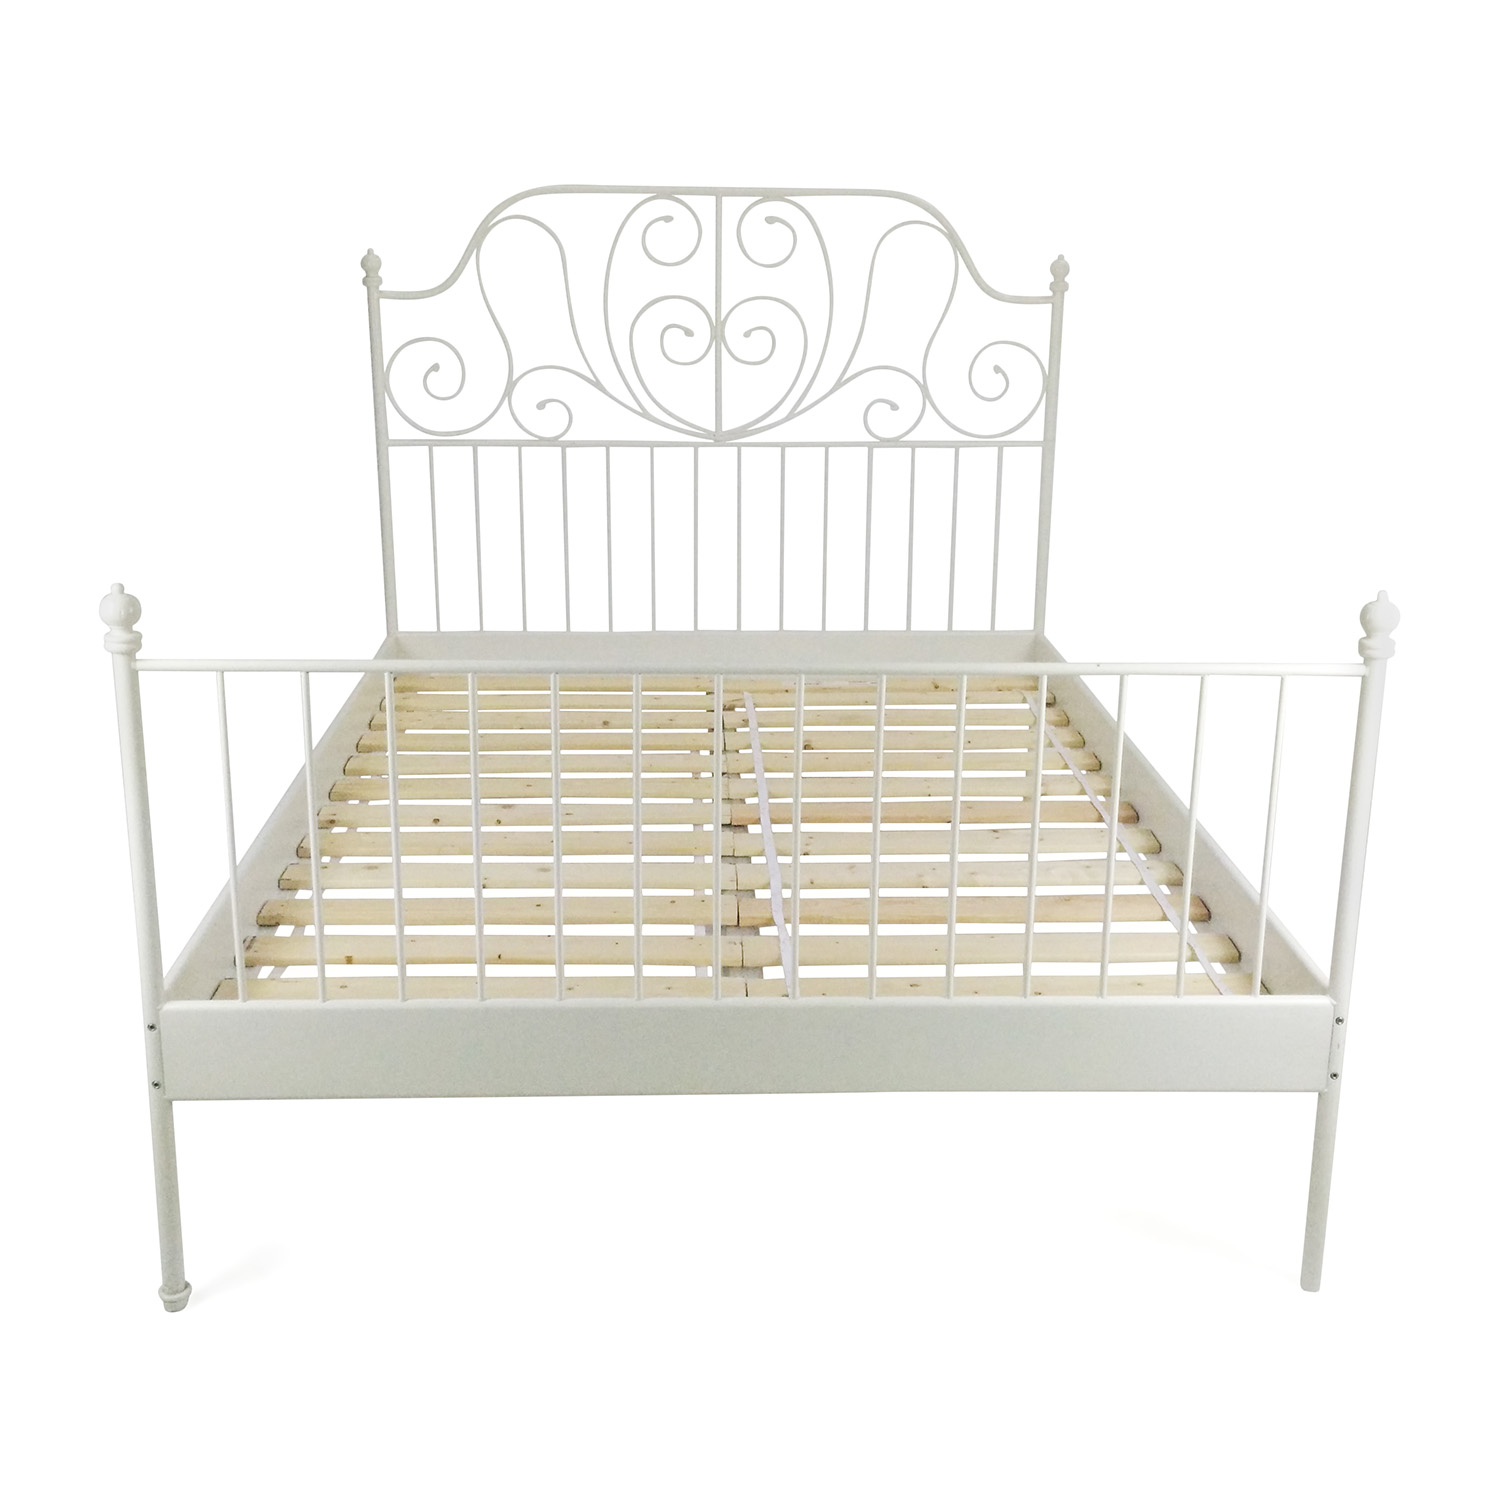 Ikea Iron Bed 70 Off Ikea Ikea Queen Sized Iron Bed Frame Beds